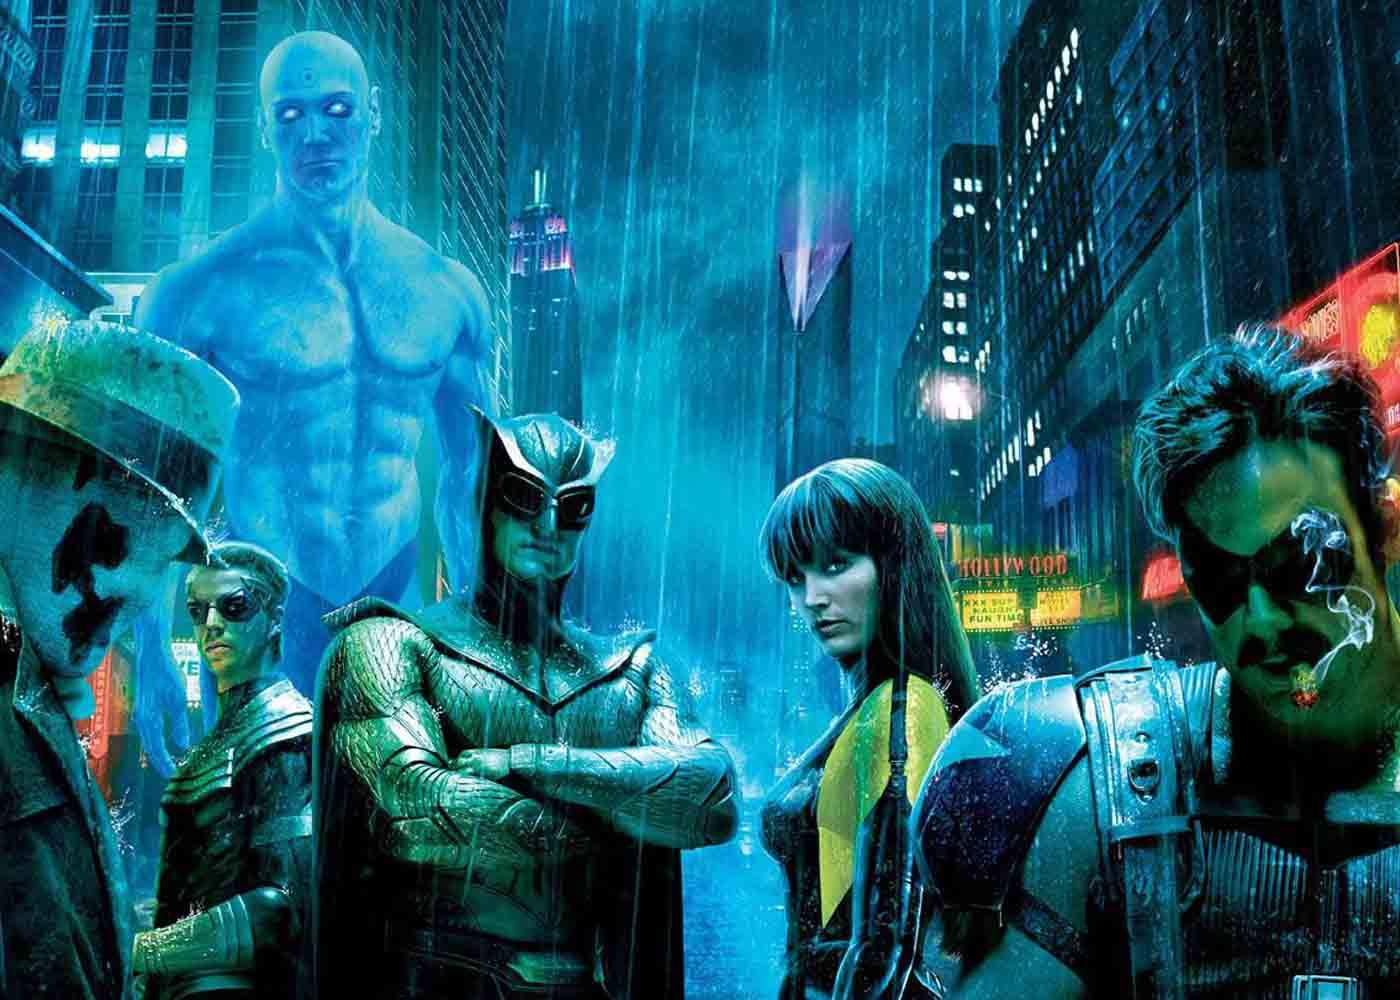 Watchmen Series Being Developed at HBO by Damon Lindelof